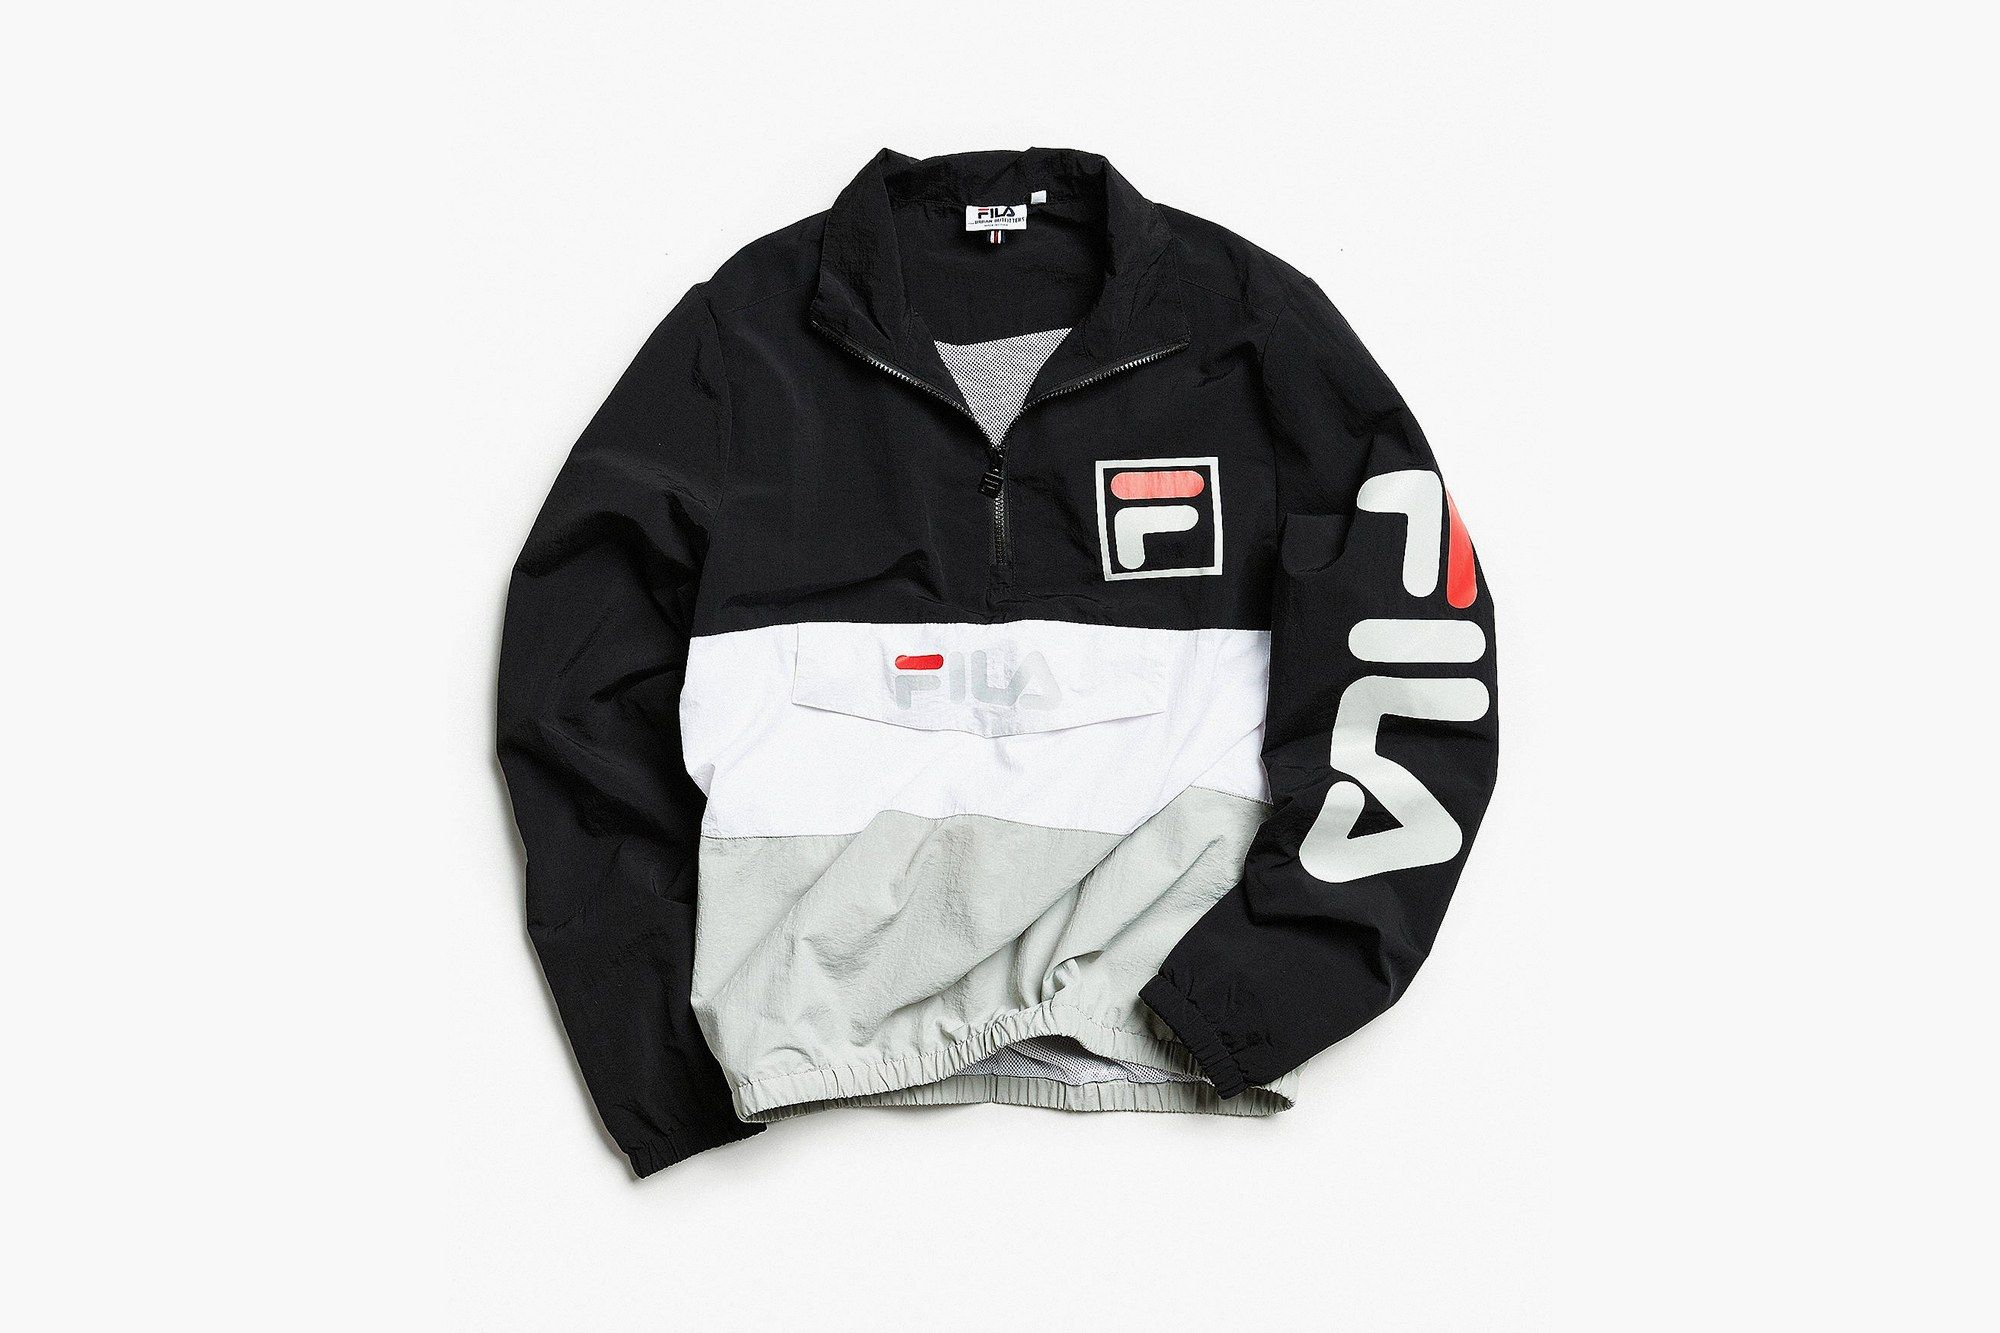 buy popular 0c7d9 711a5 Chance the Rapper Wore a Windbreaker, So Now You Need a ...